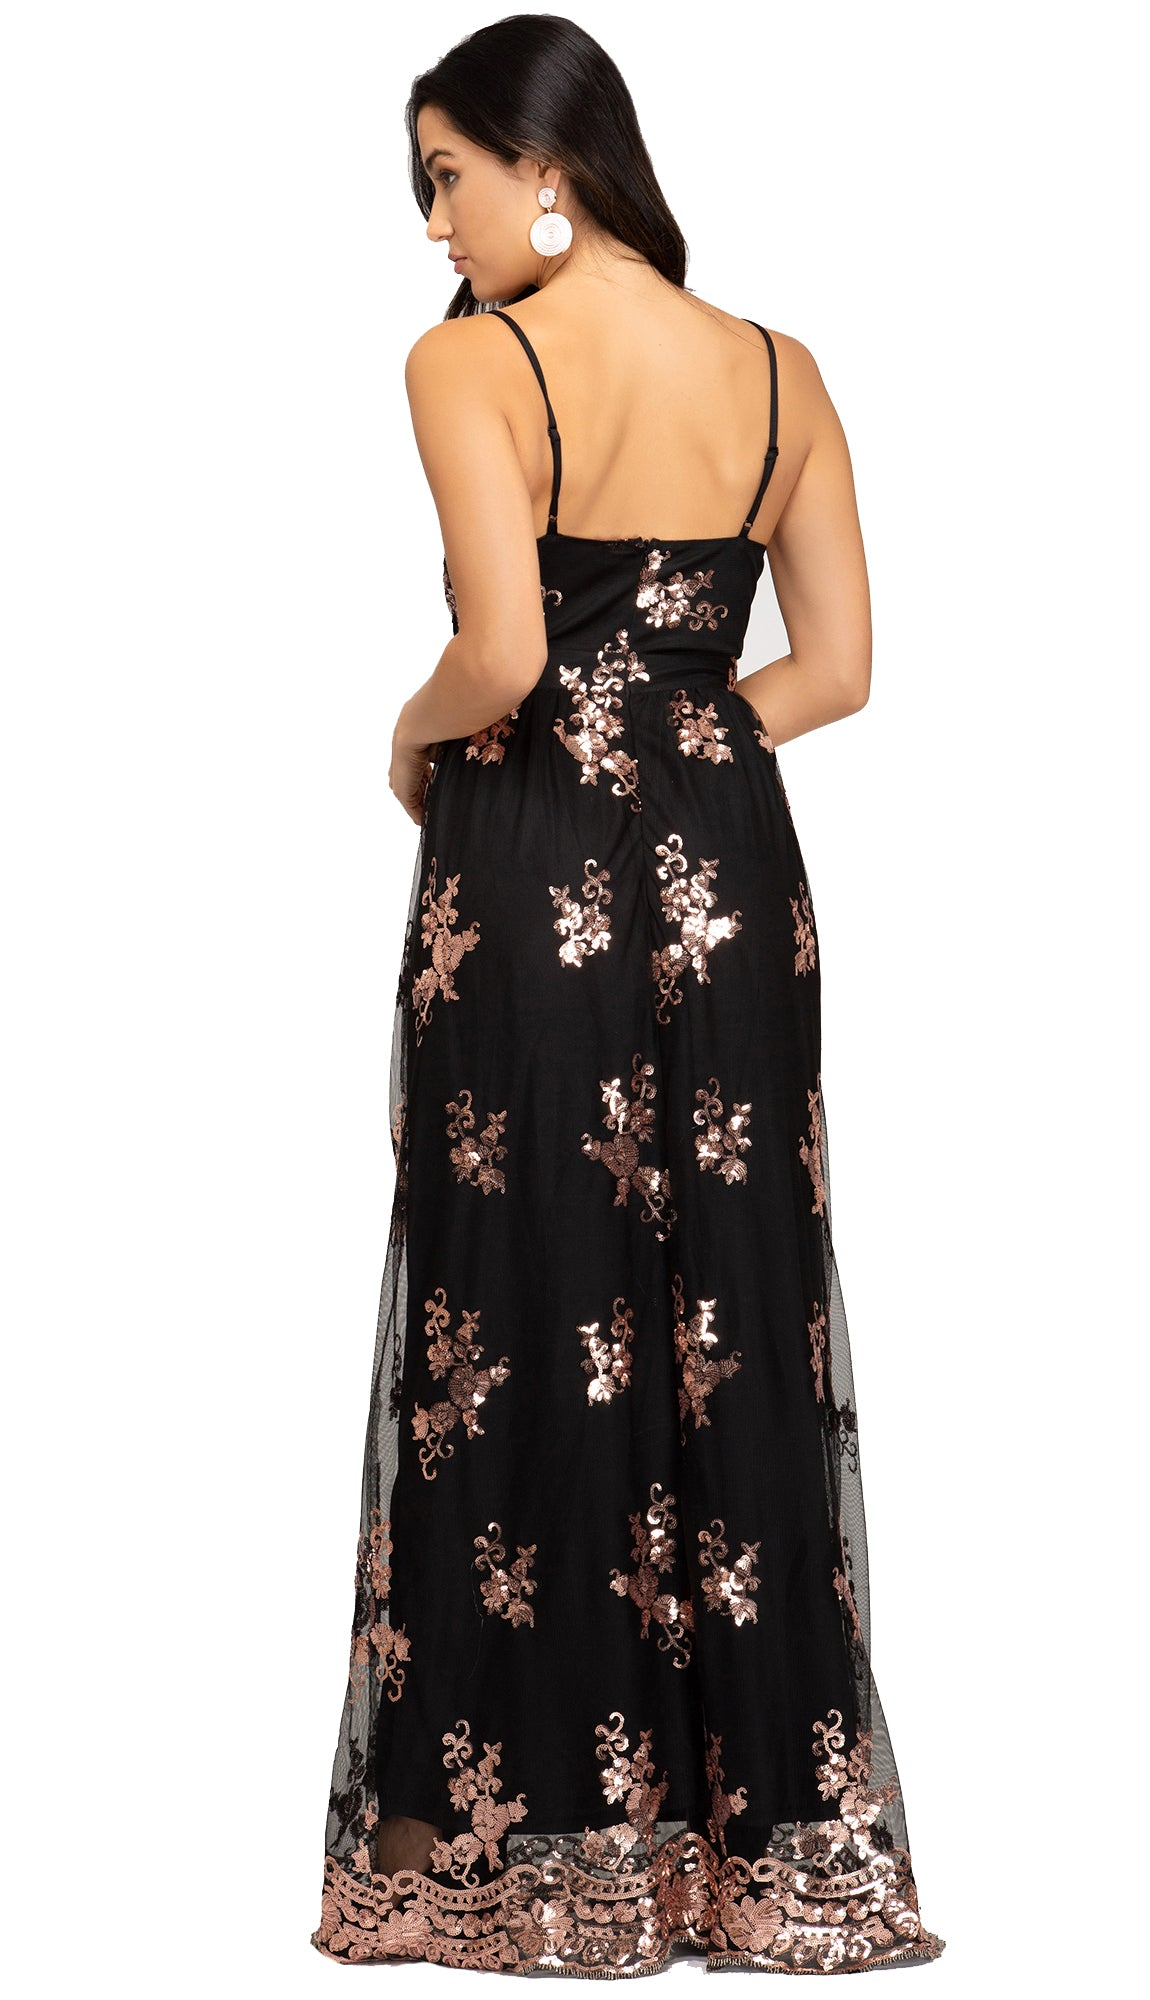 Razzle Dazzle Sequin Maxi Dress- Black